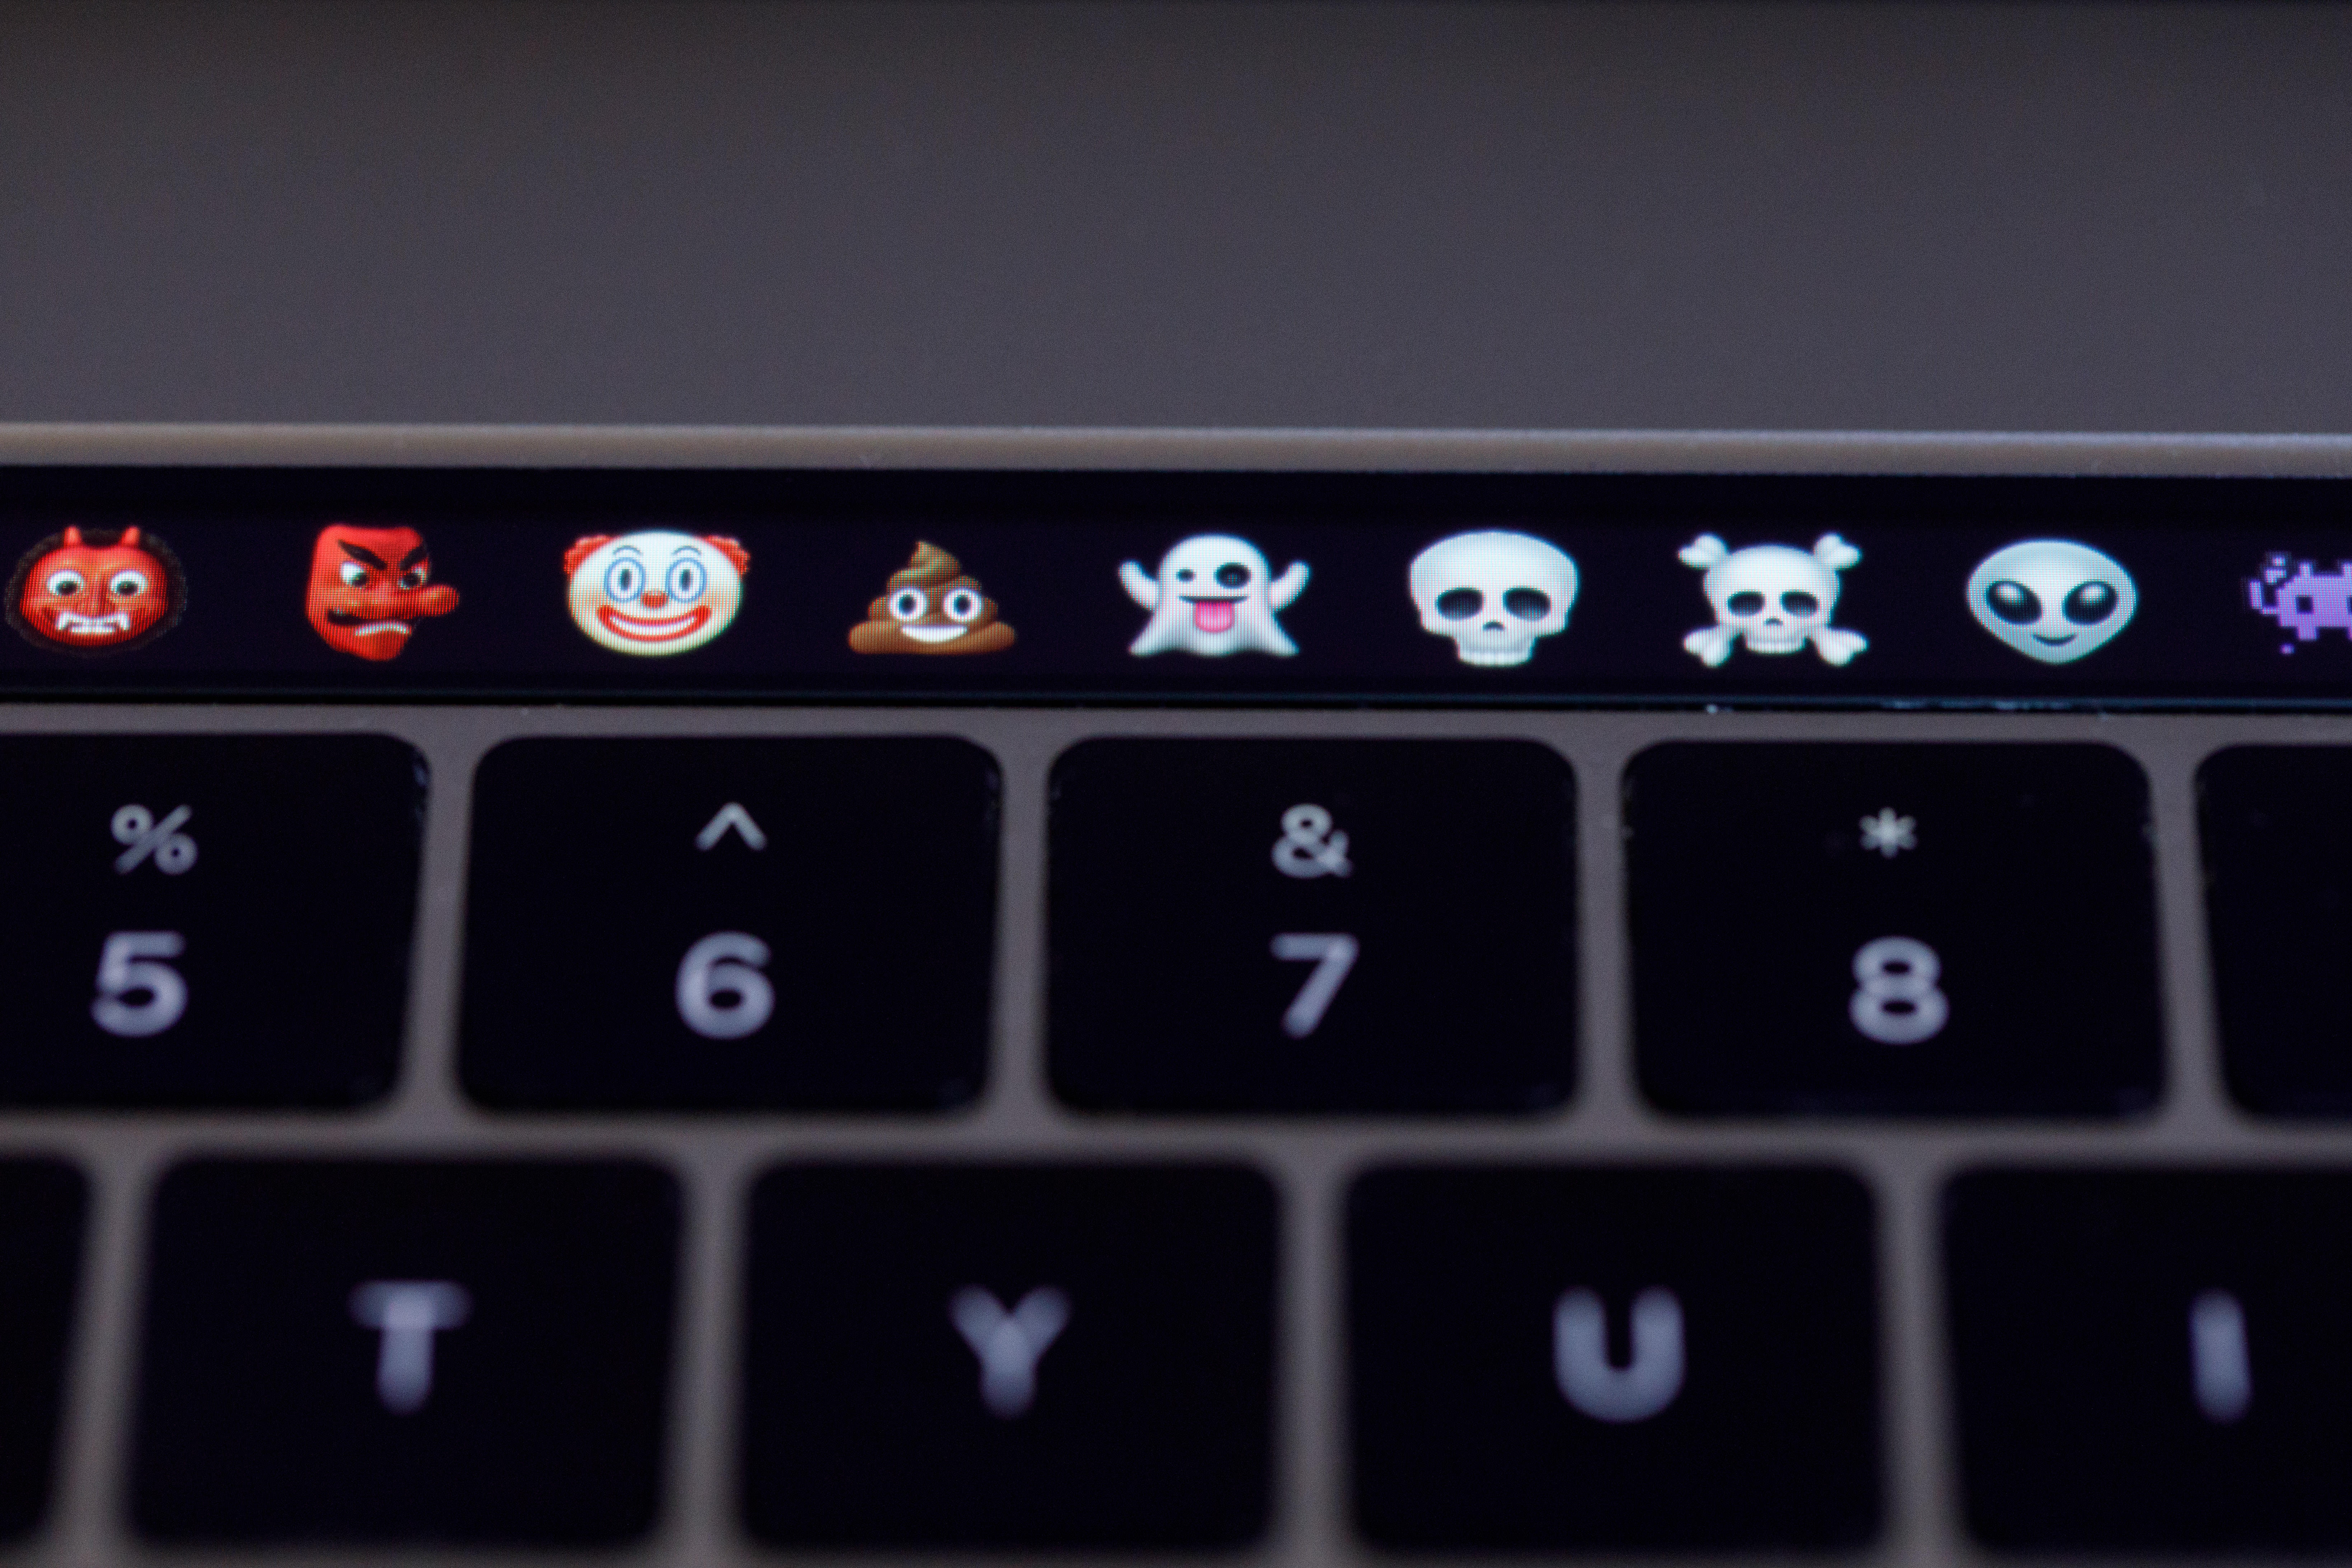 The MacBook Pro Touch Bar can be good for exploring emoji you may not know even exist.